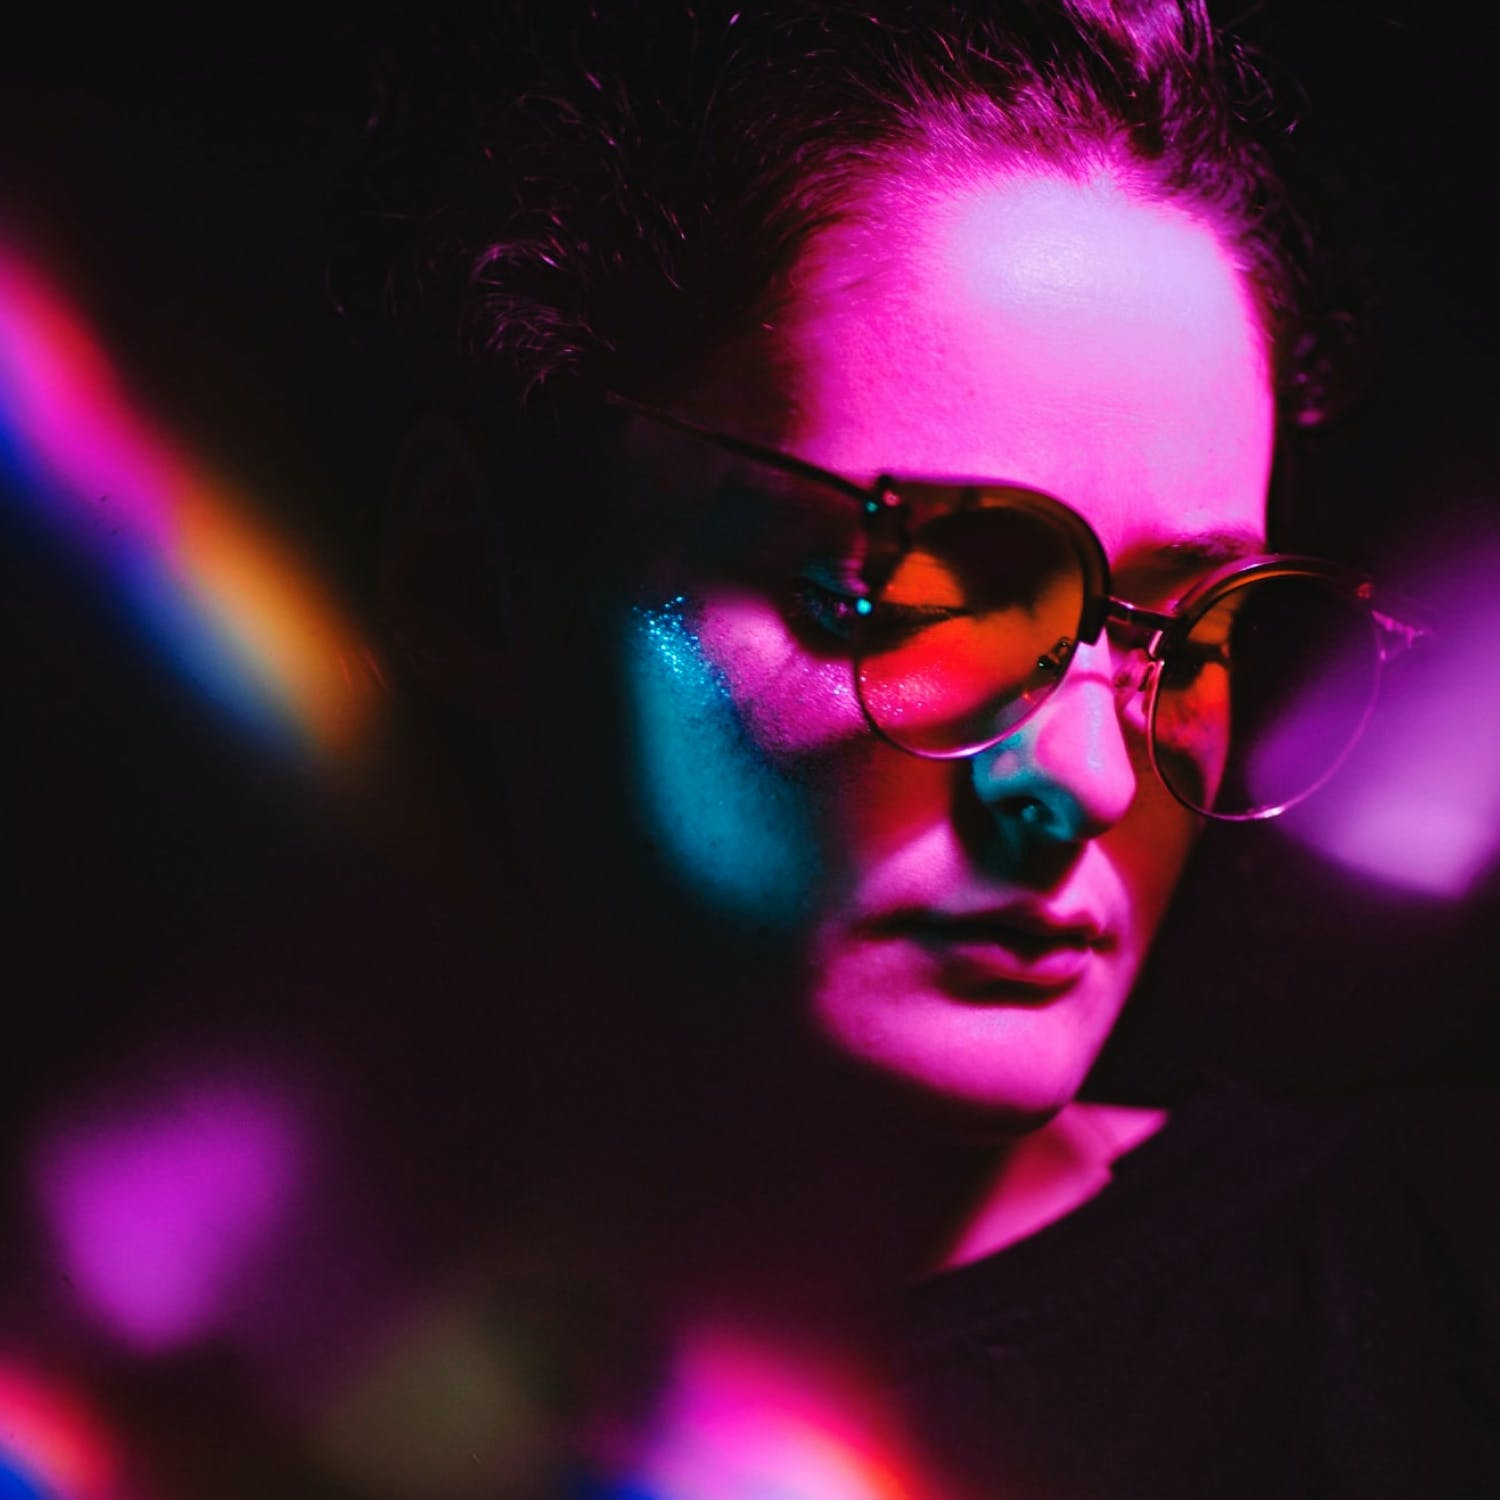 A woman wearing glasses, illuminated with a pink light.